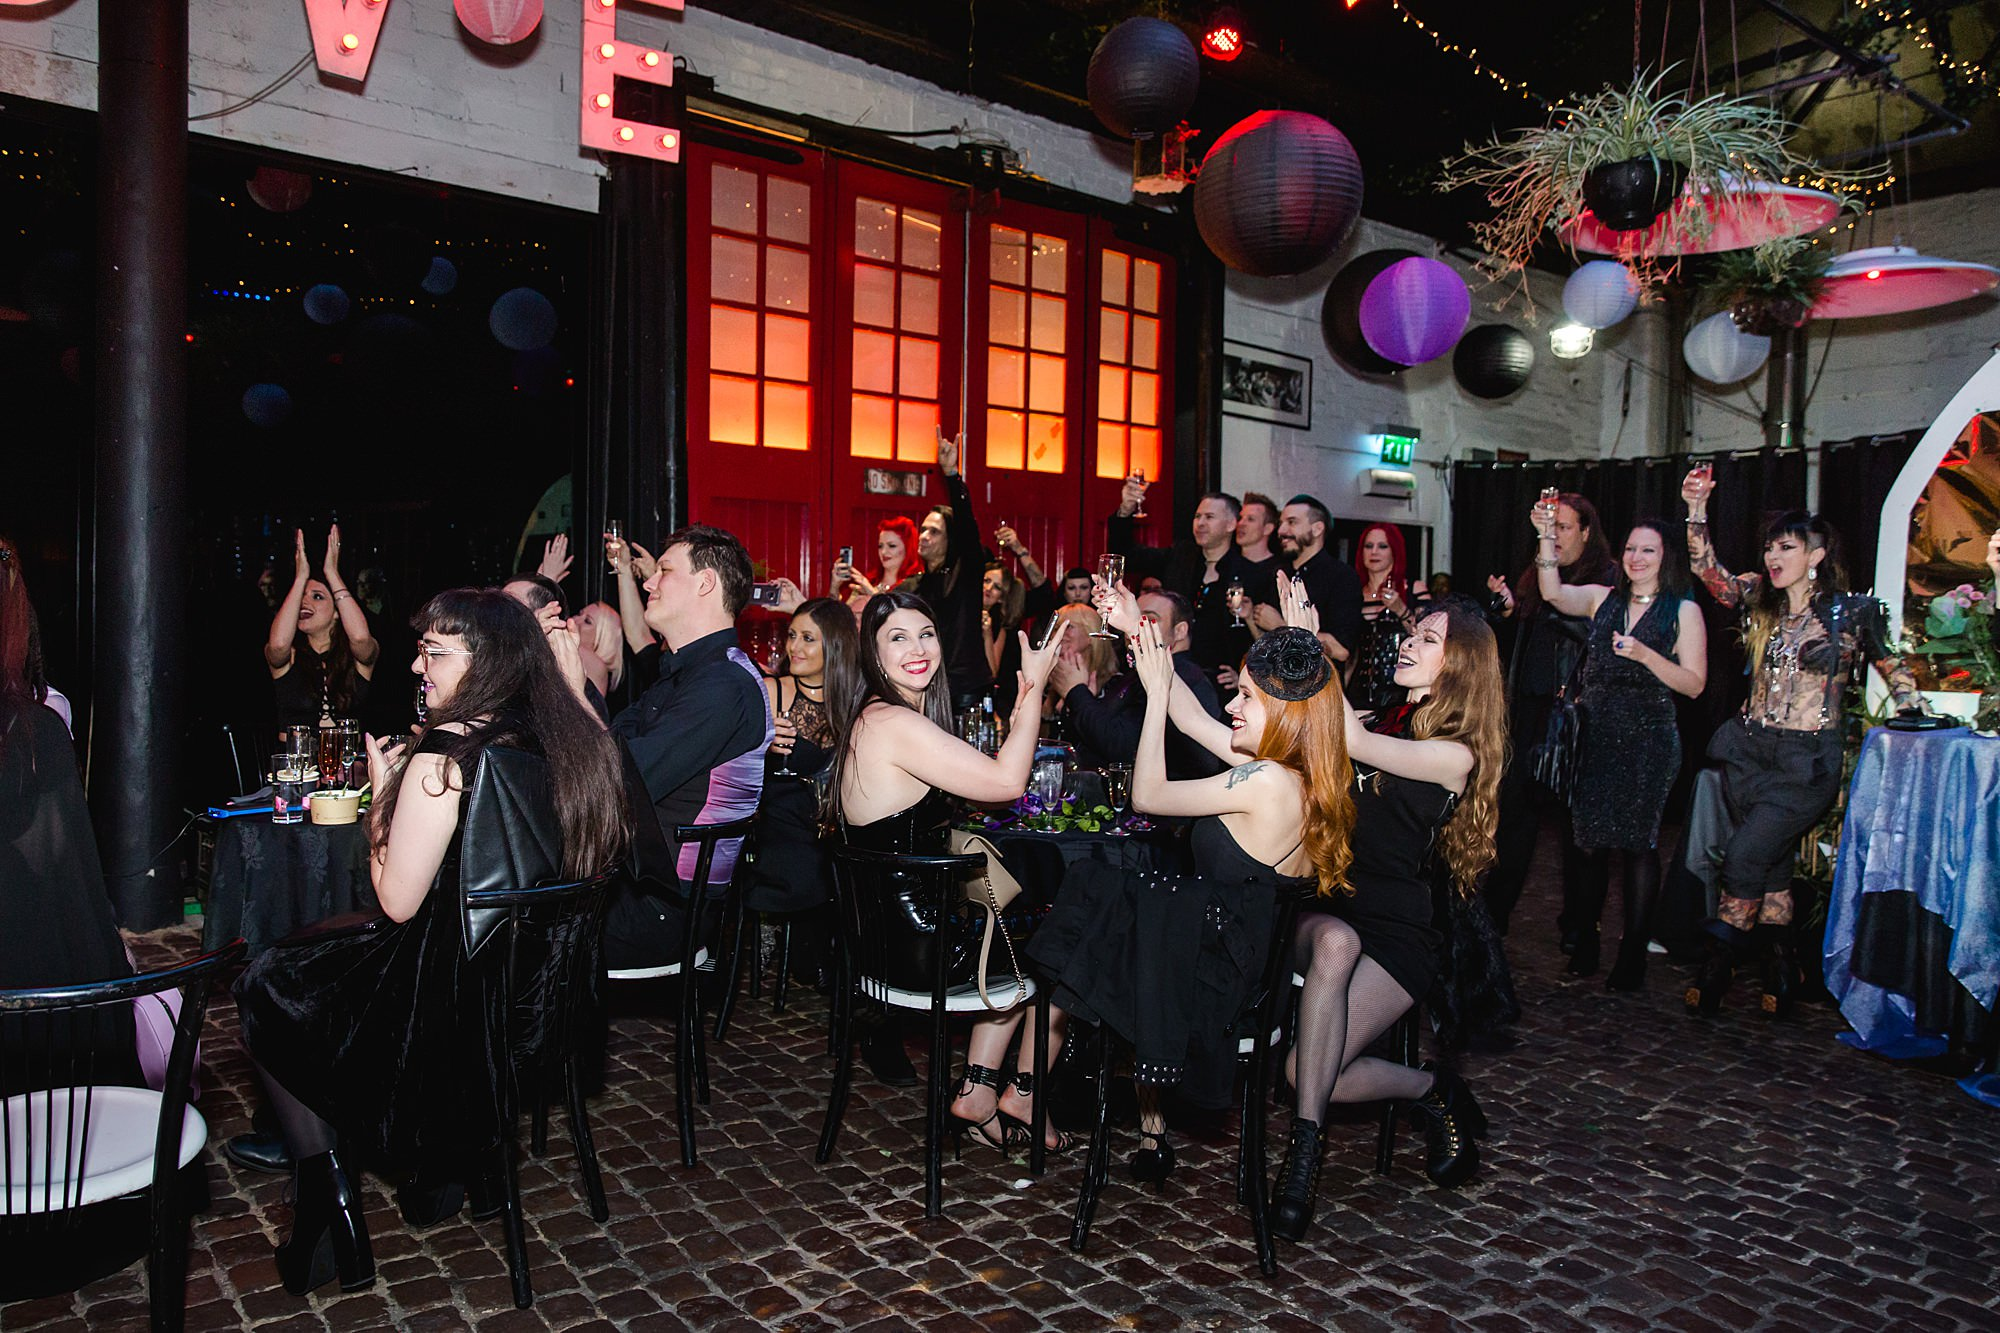 wedding guests cheering for speeches at Gothic wedding London